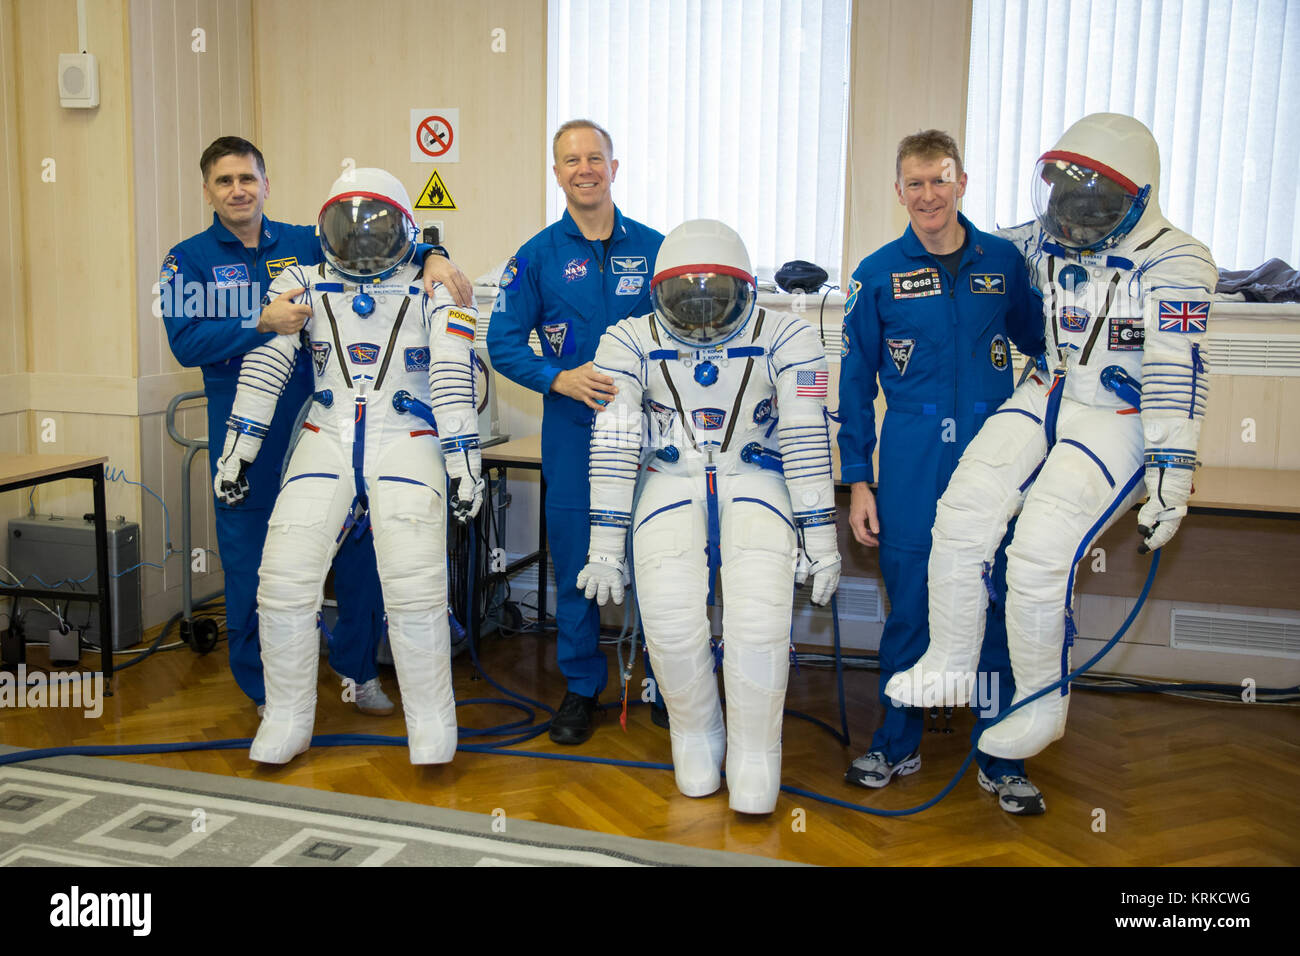 Soyuz TMA-19M crew members with their space suits - Stock Image